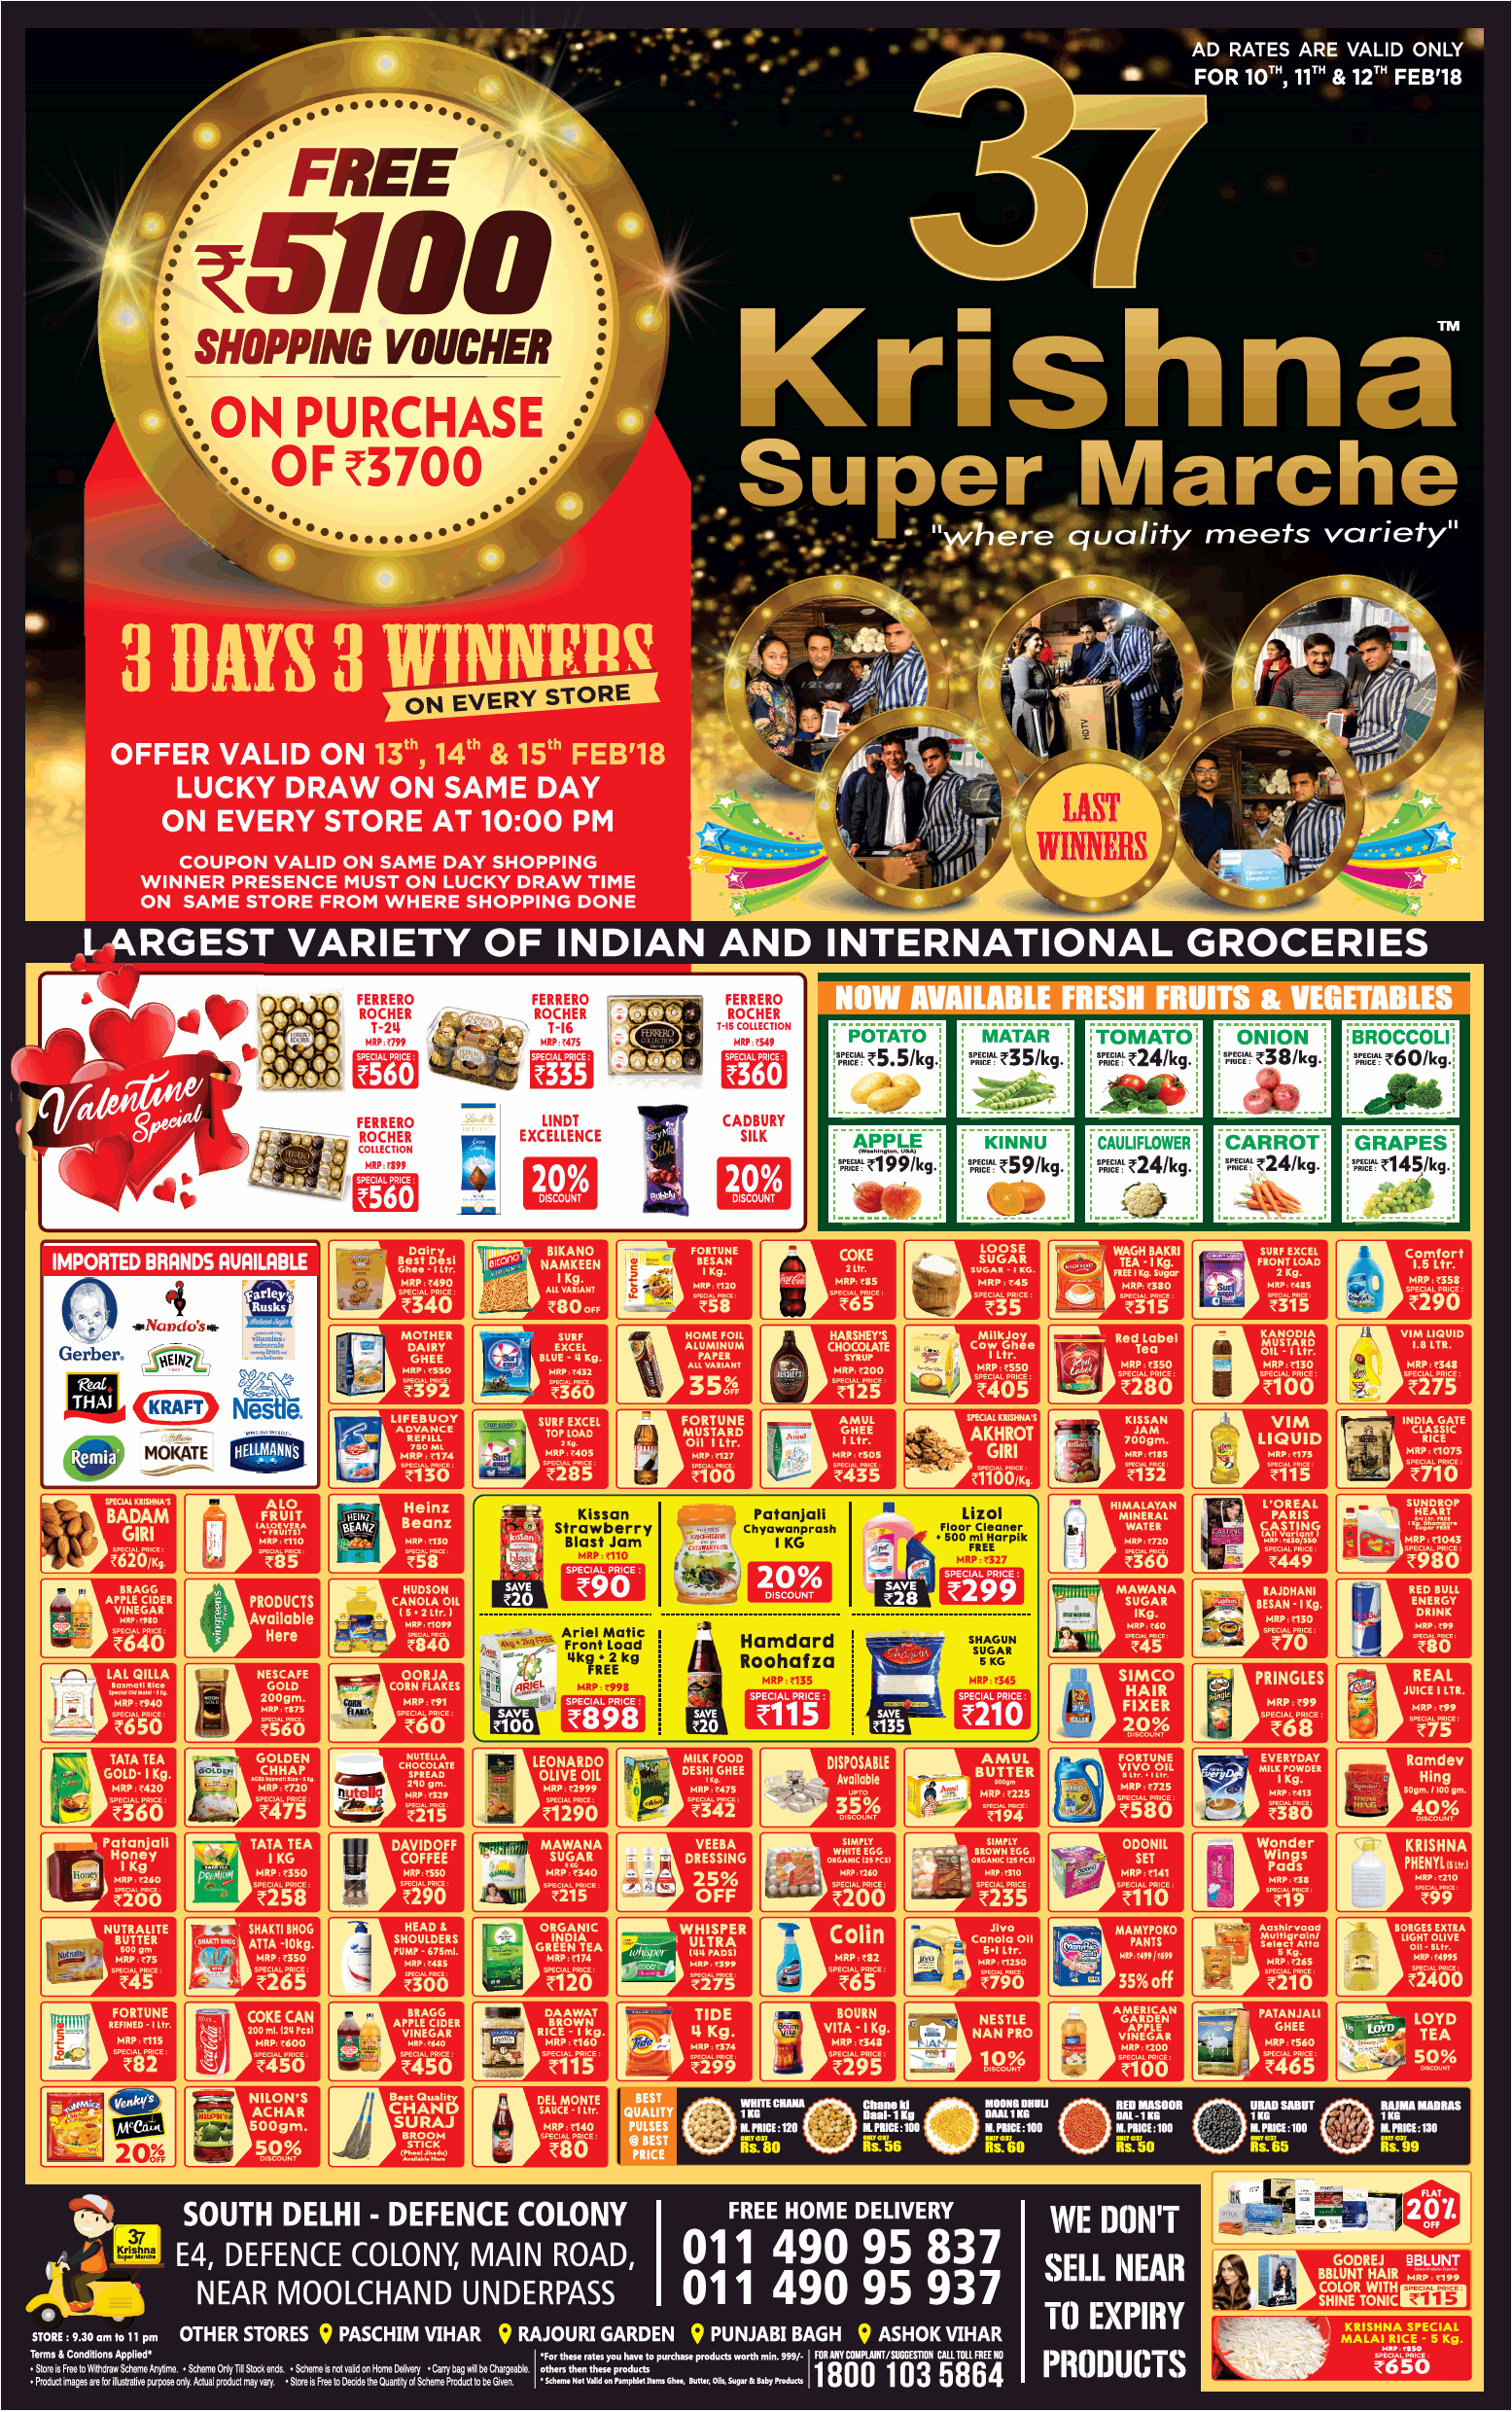 37 Krishna Super Marche Free Rs 5100 Shopping Voucher On Purchase Of Rs 3700 Ad